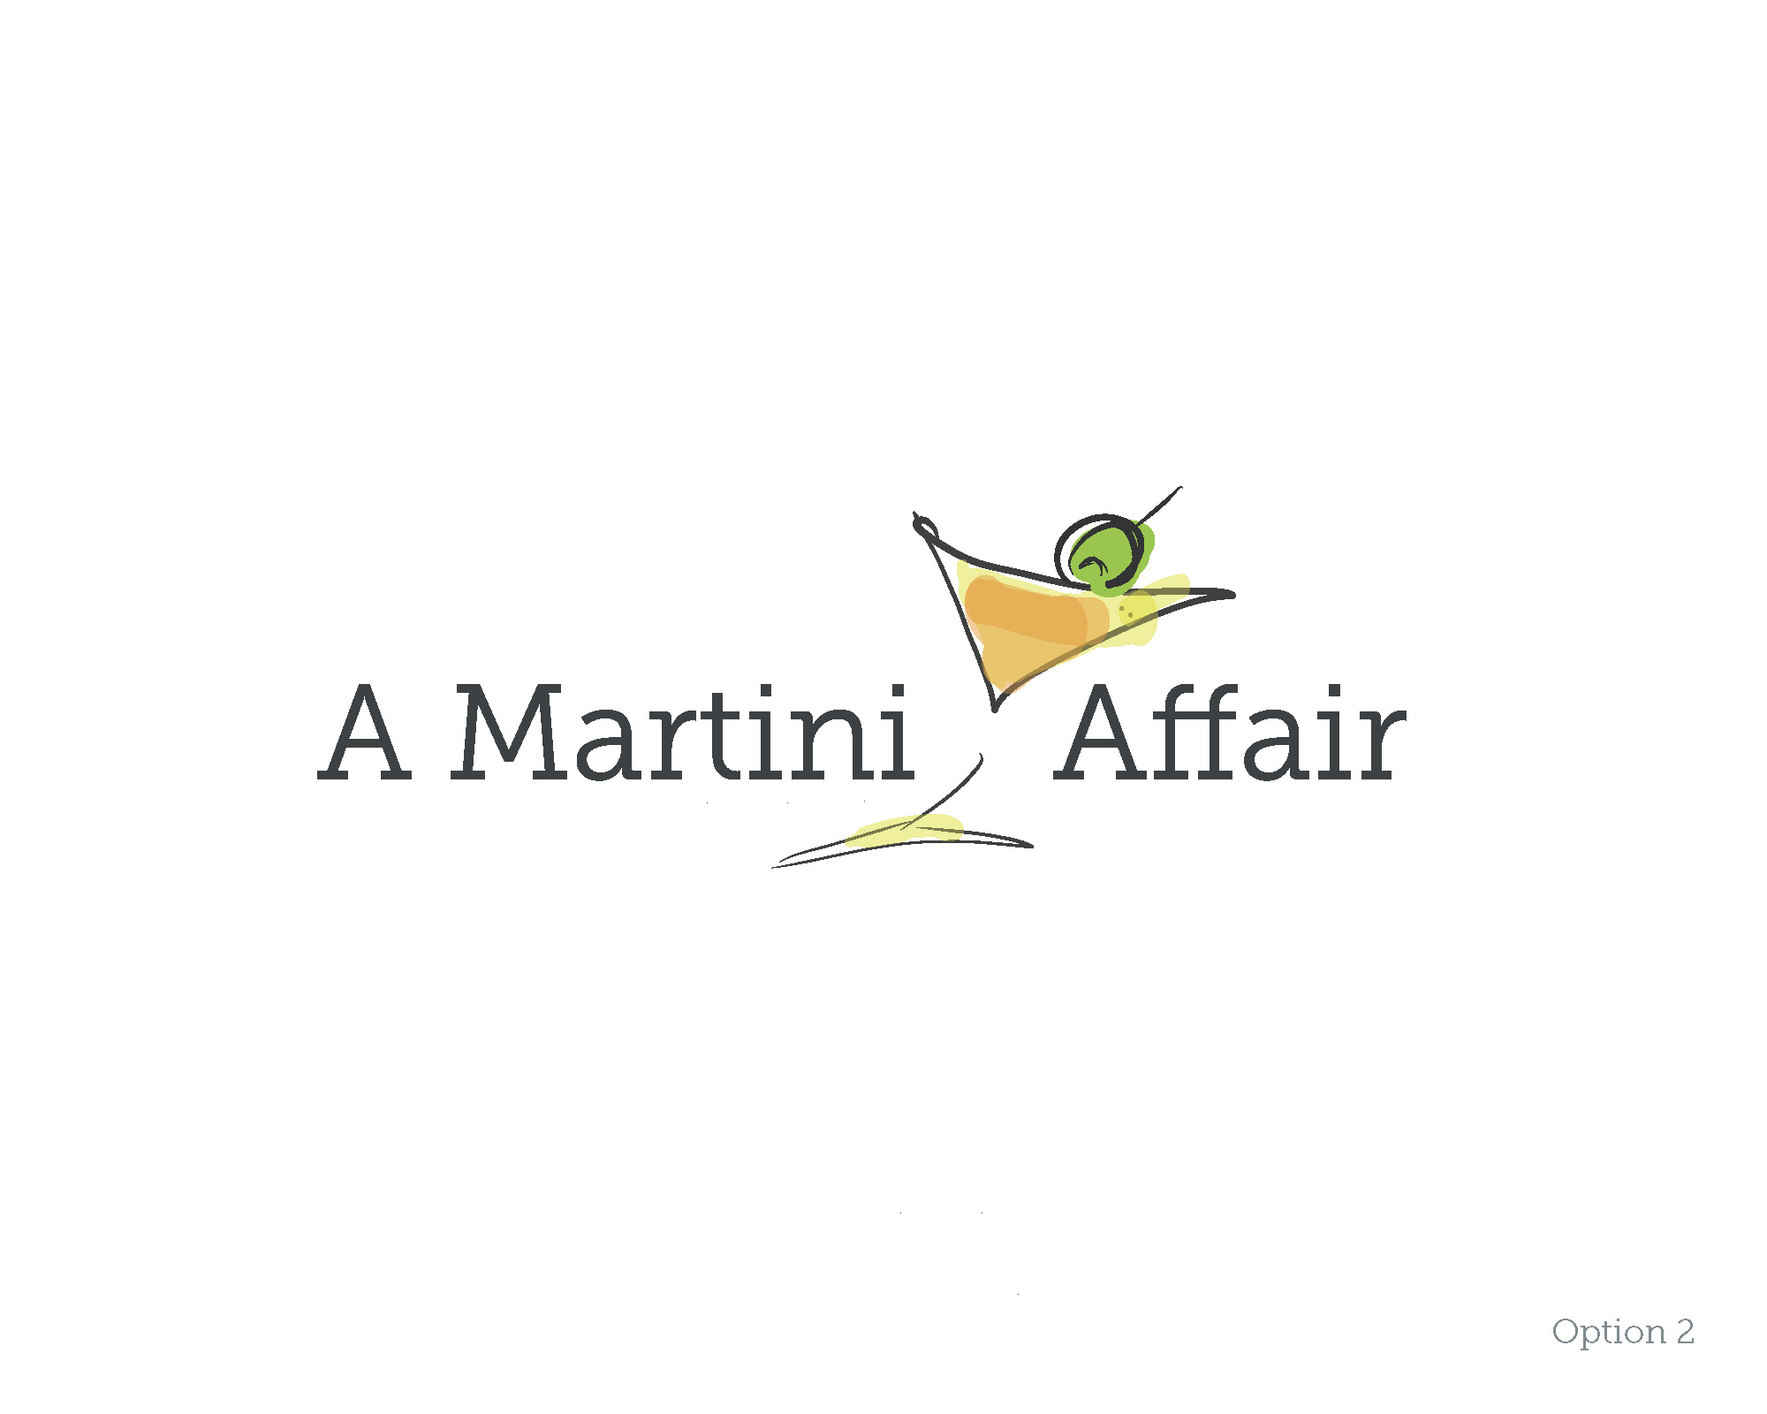 A Martini Affair image